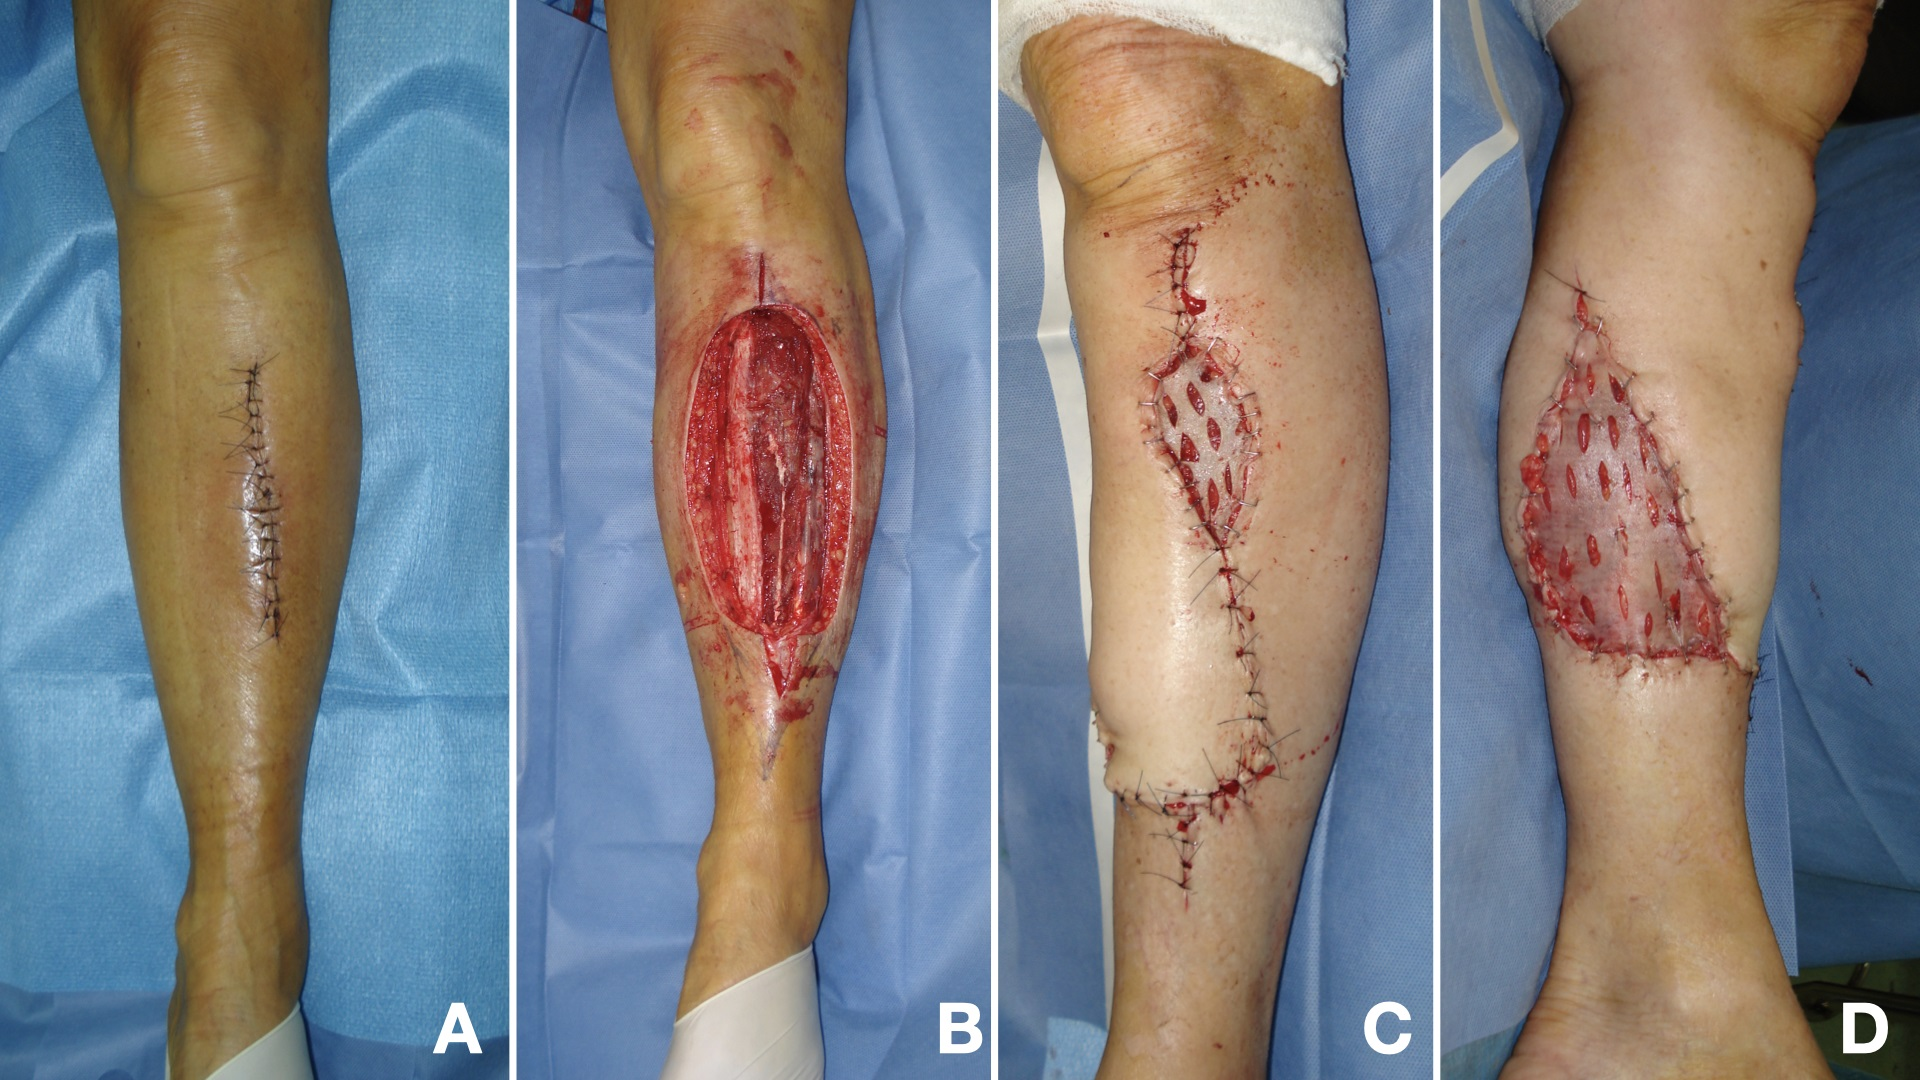 Figure 2. A) 65 years-old woman with an unplanned incomplete sarcoma excision of the leg. B) Wide resection. C and D) Medial Fasciocutaneous flap covering the proximal and middle third of the exposed tibia.